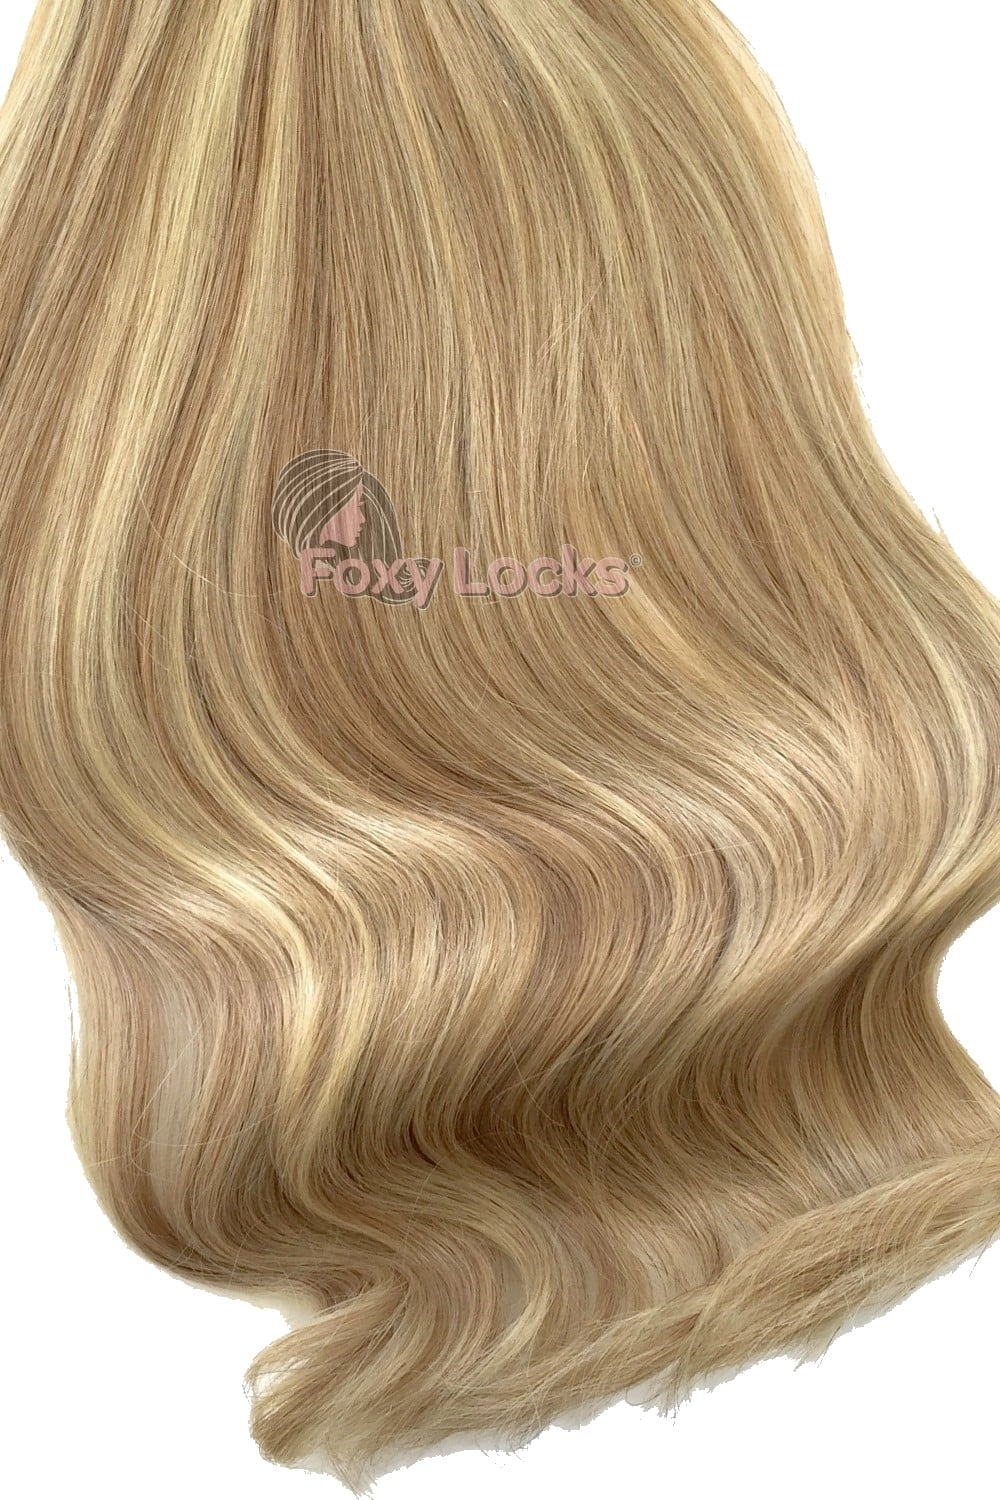 Latte Blonde Luxurious 24 Clip In Human Hair Extensions 280g